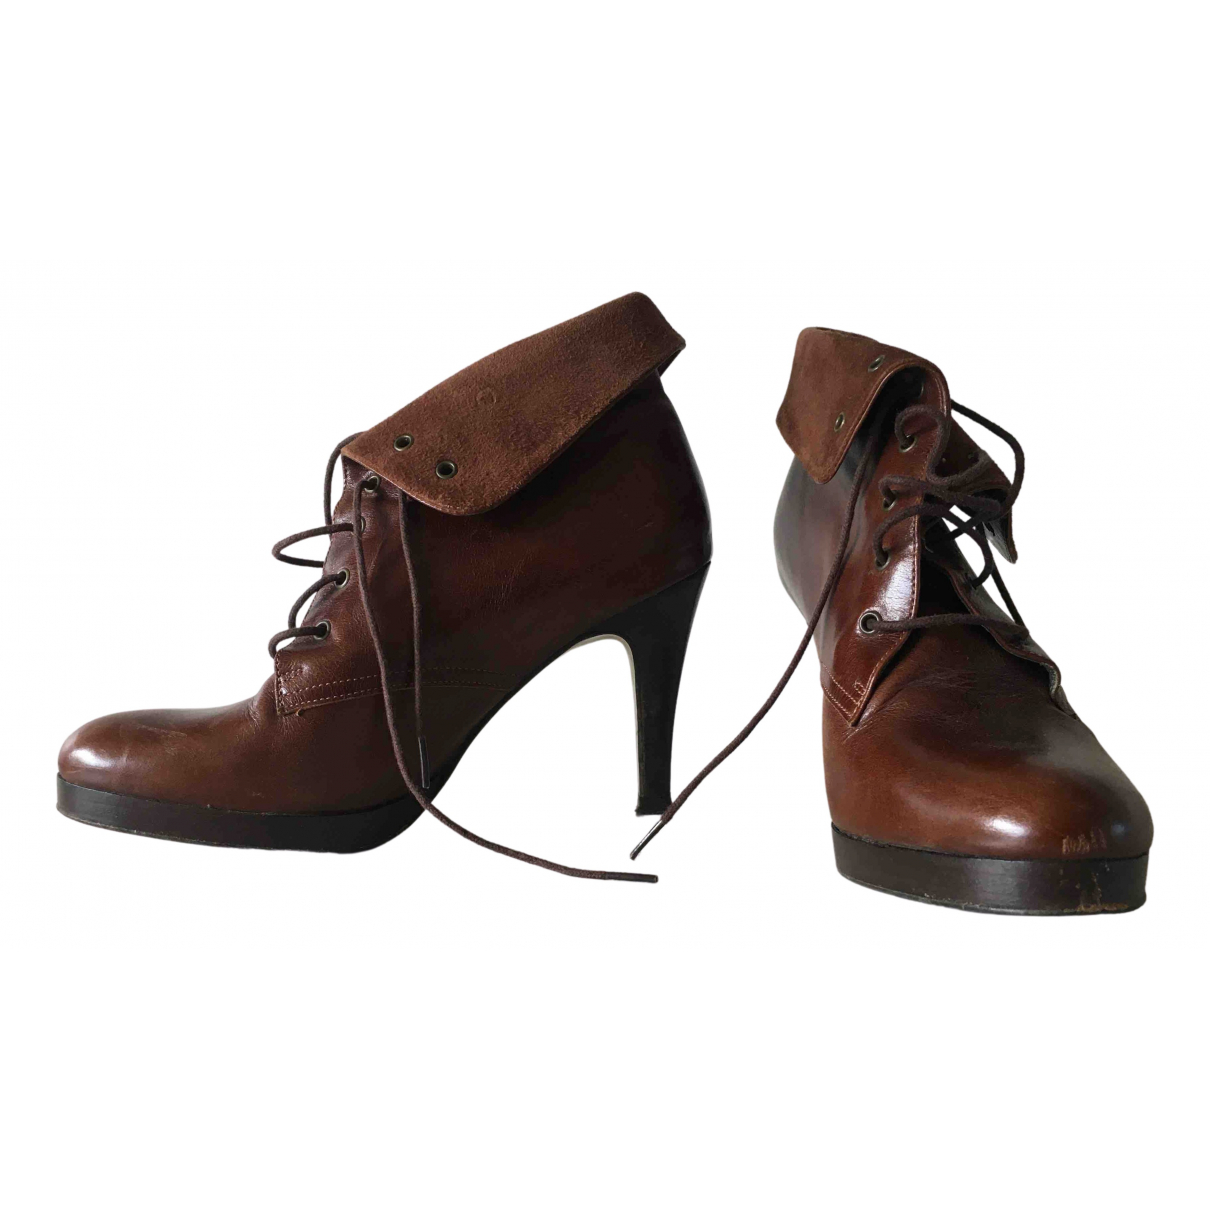 Gerard Darel N Brown Leather Boots for Women 36 EU